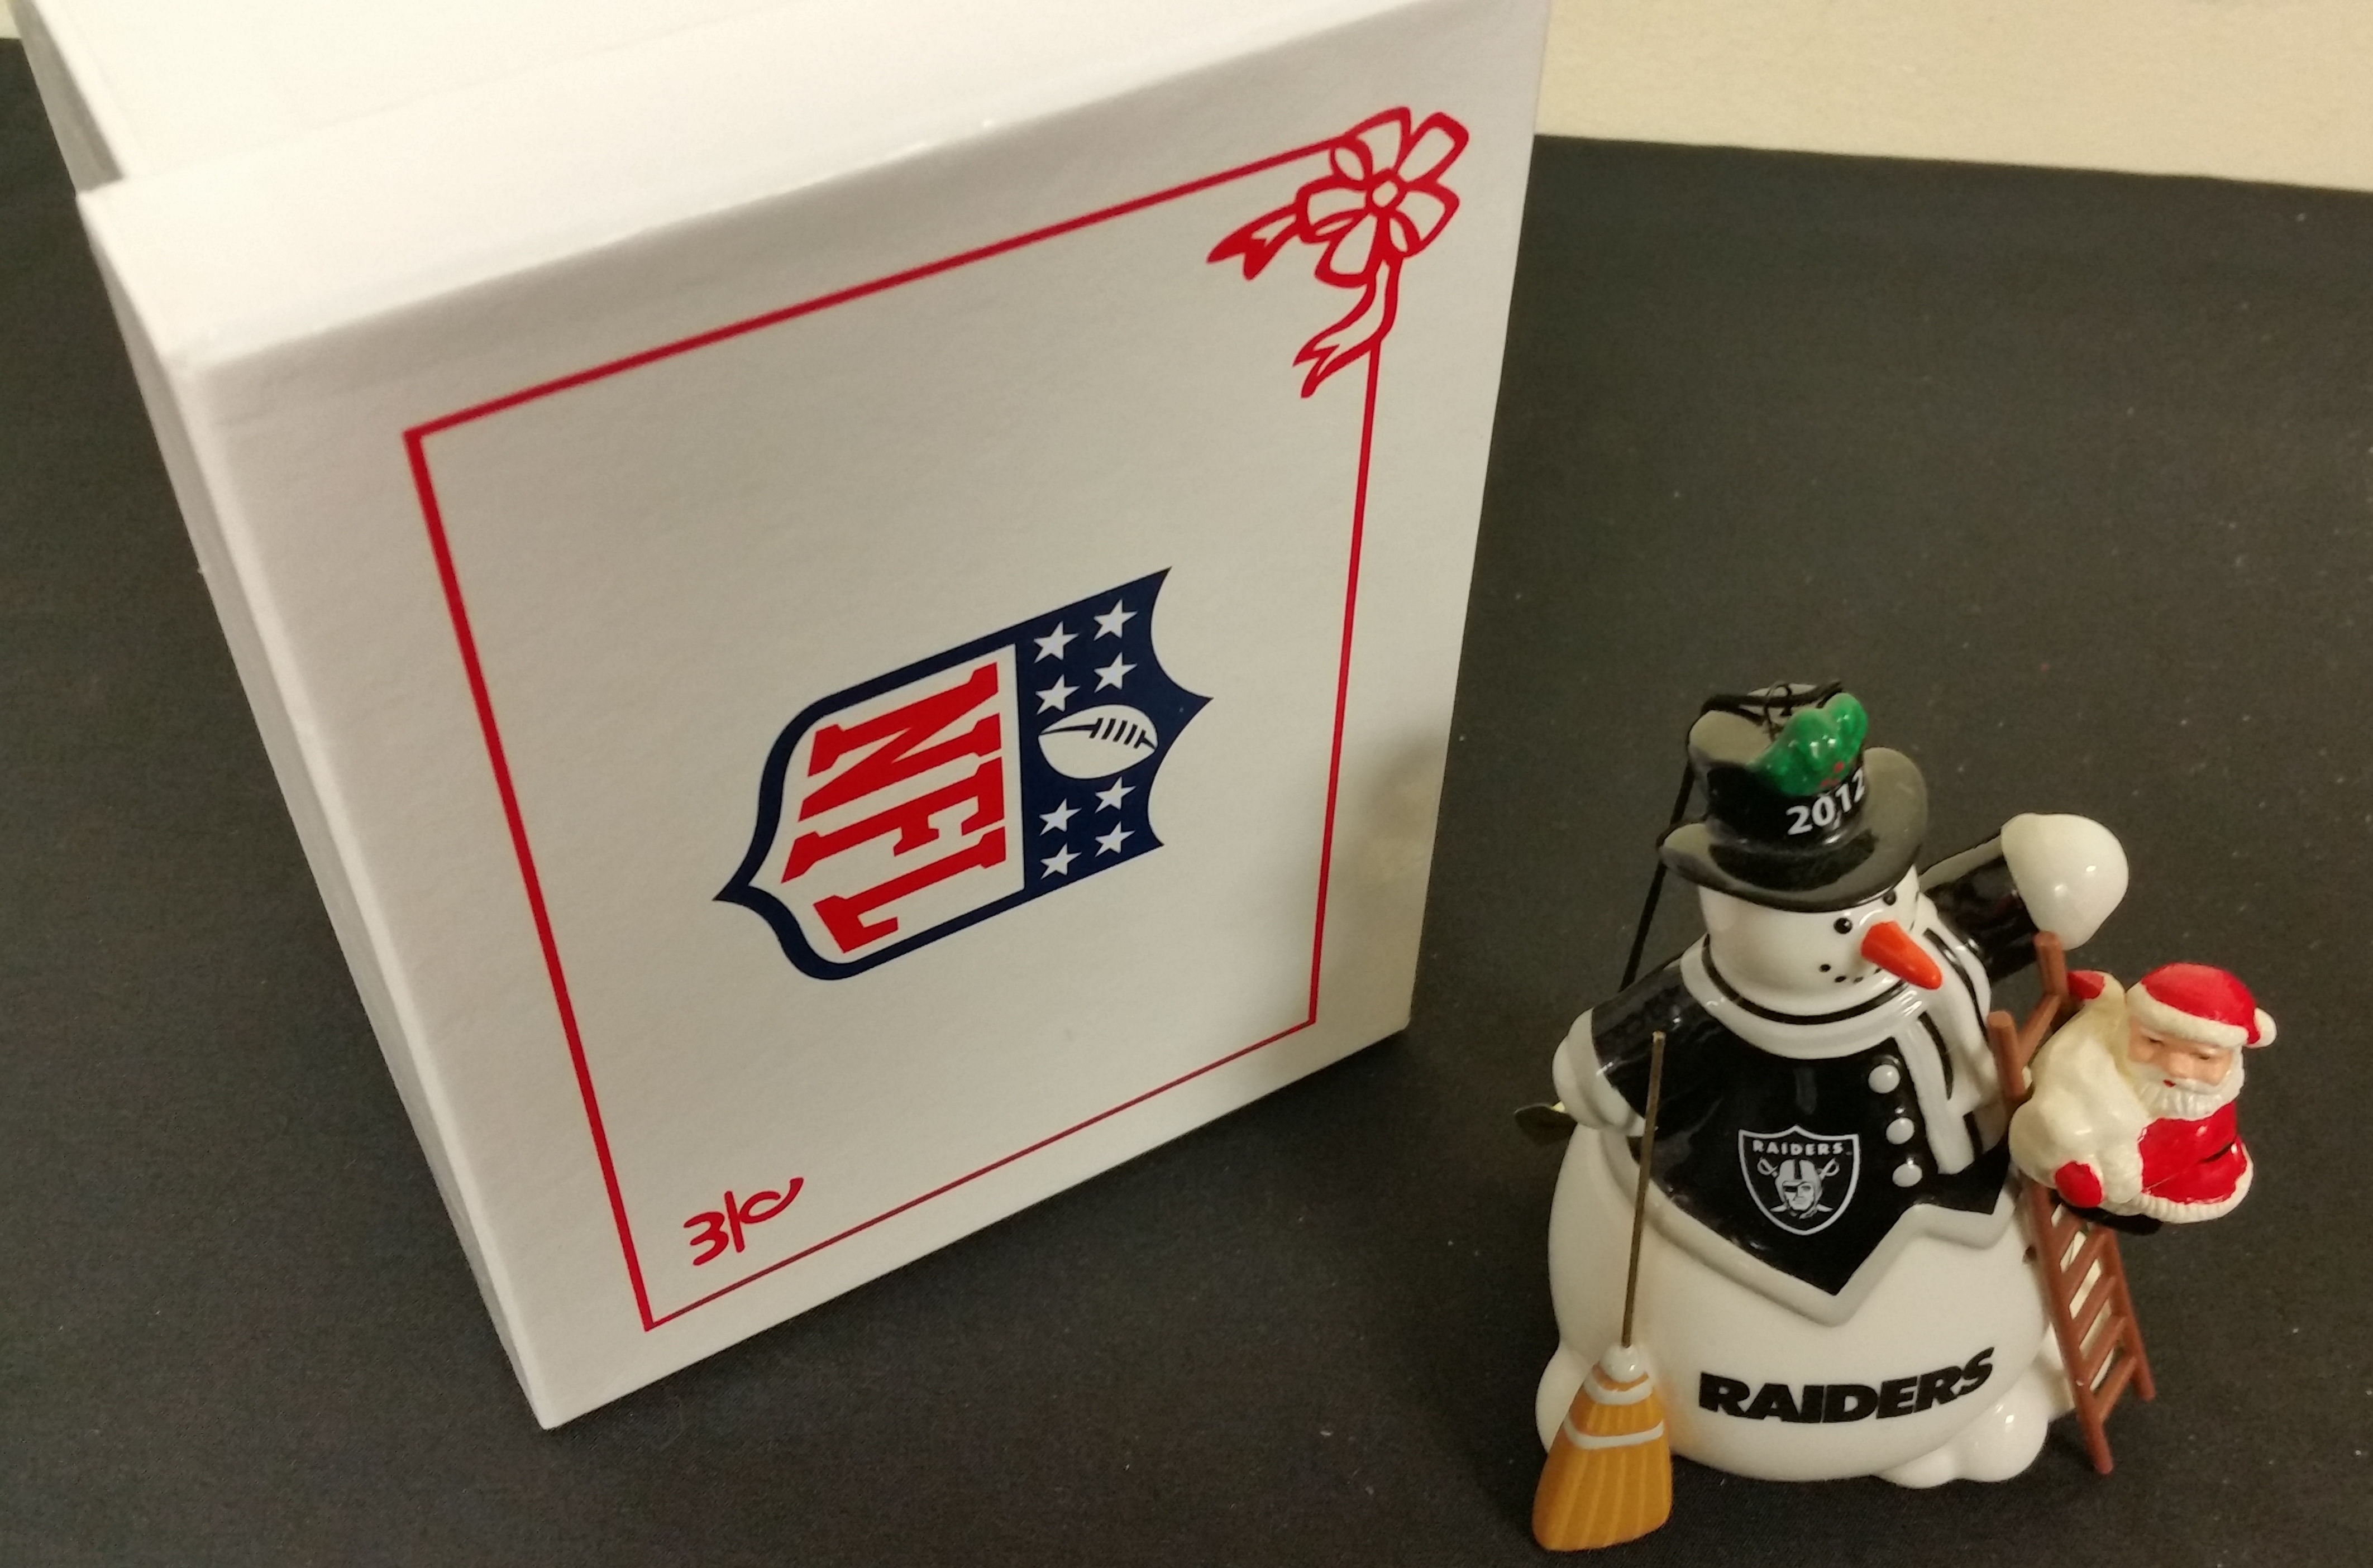 NFL COLLECTIBLES - 2012 RAIDERS SNOWMAN ORNAMENT